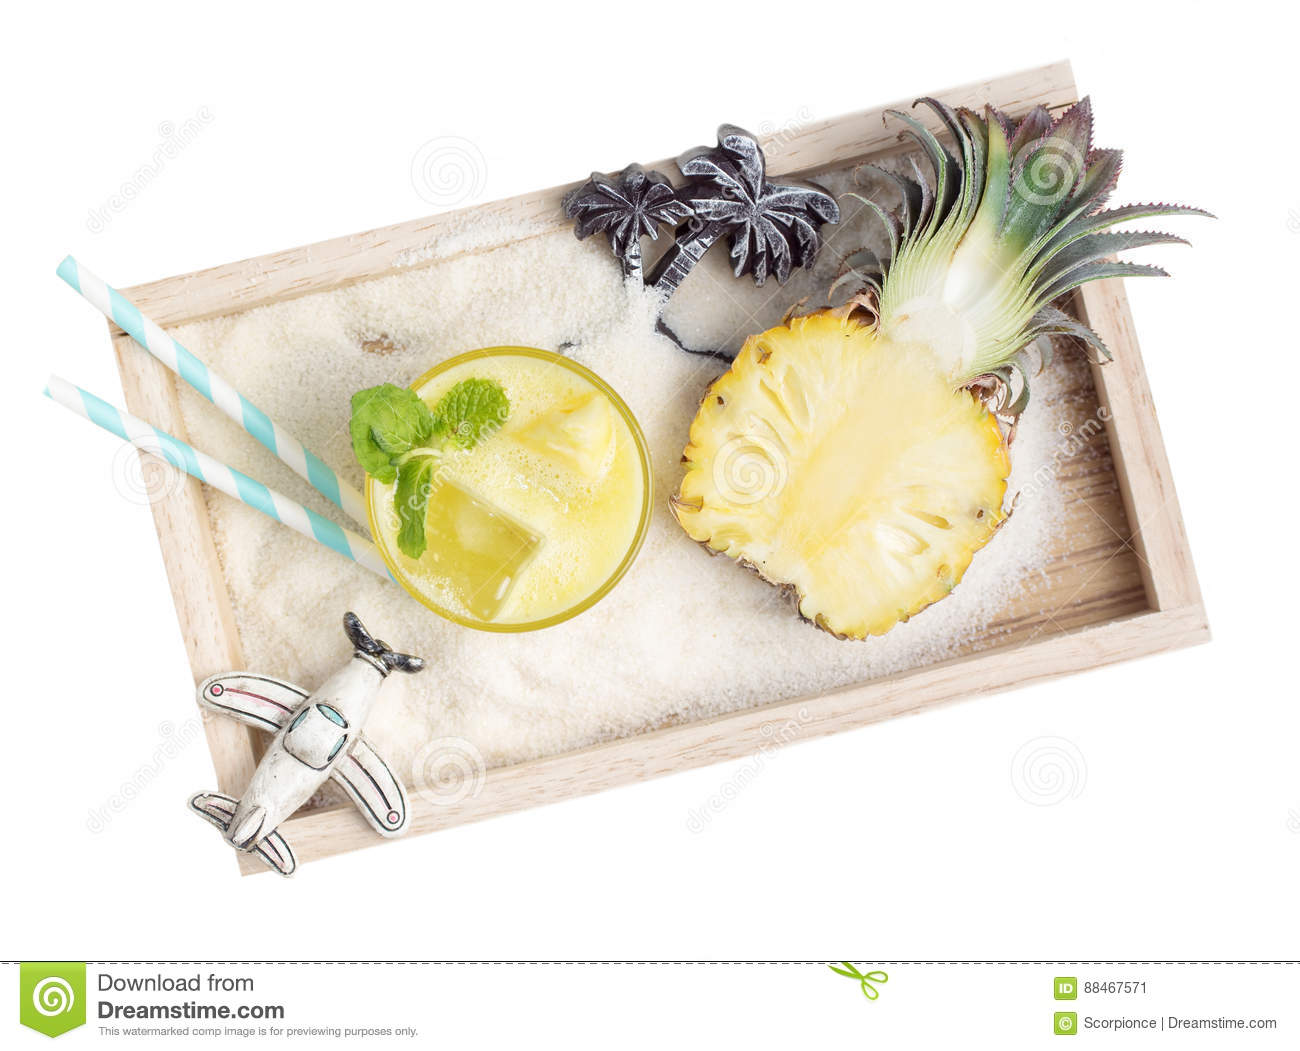 Healthy Pineapple Drink With Toys In Sand On Wooden Tray Stock Image